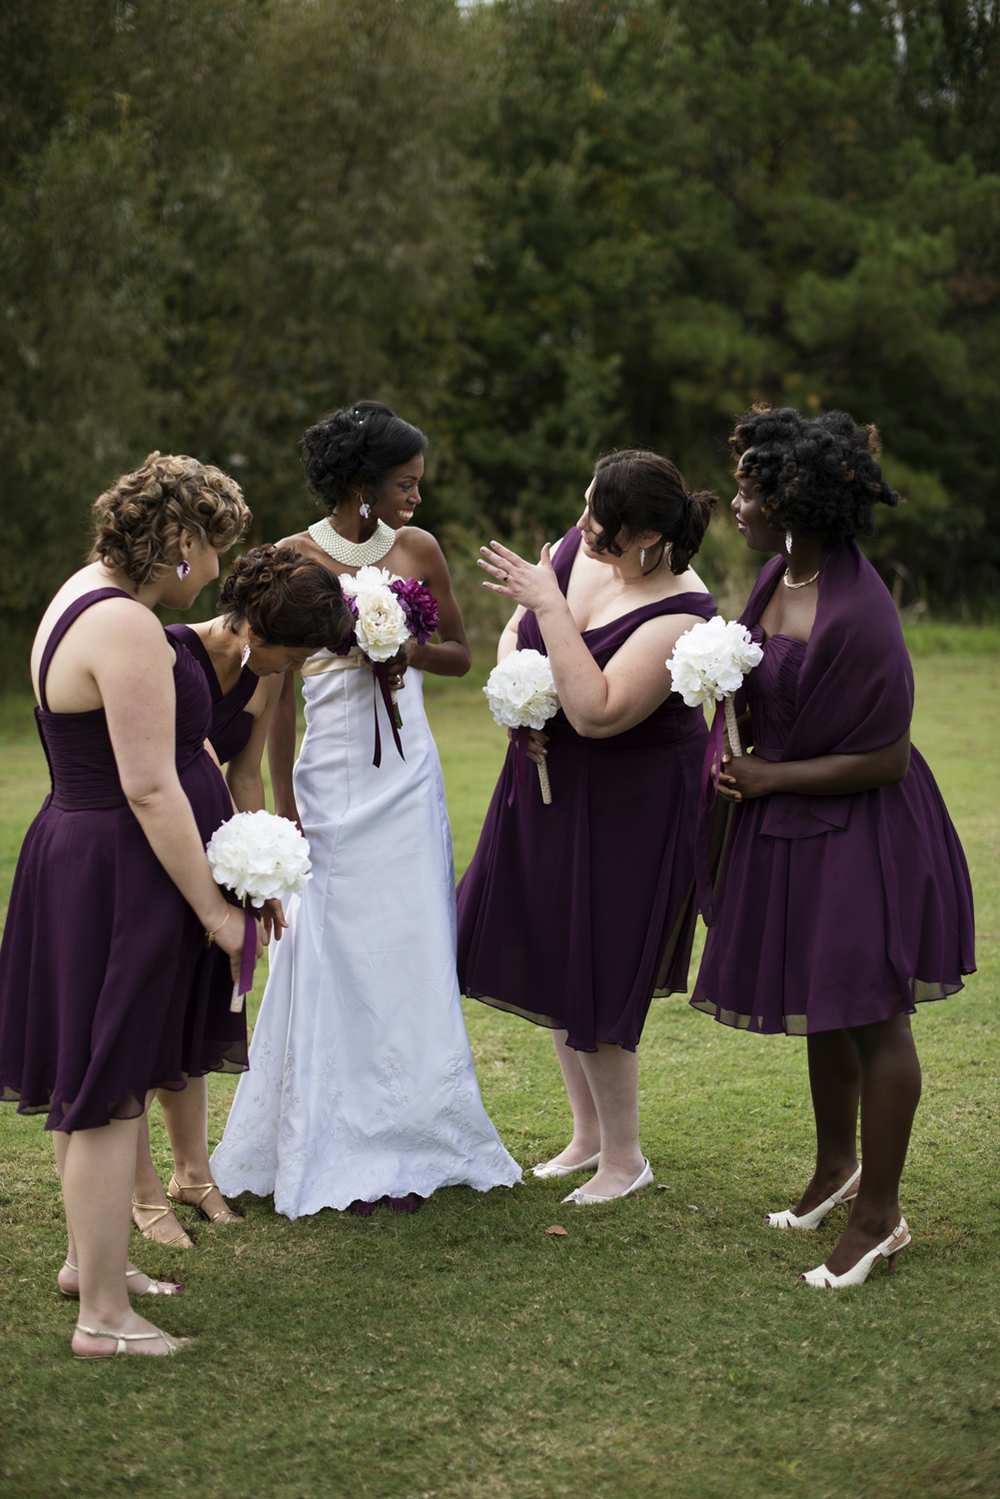 Bridesmaids gather around the bride in purple dresses and white flowers